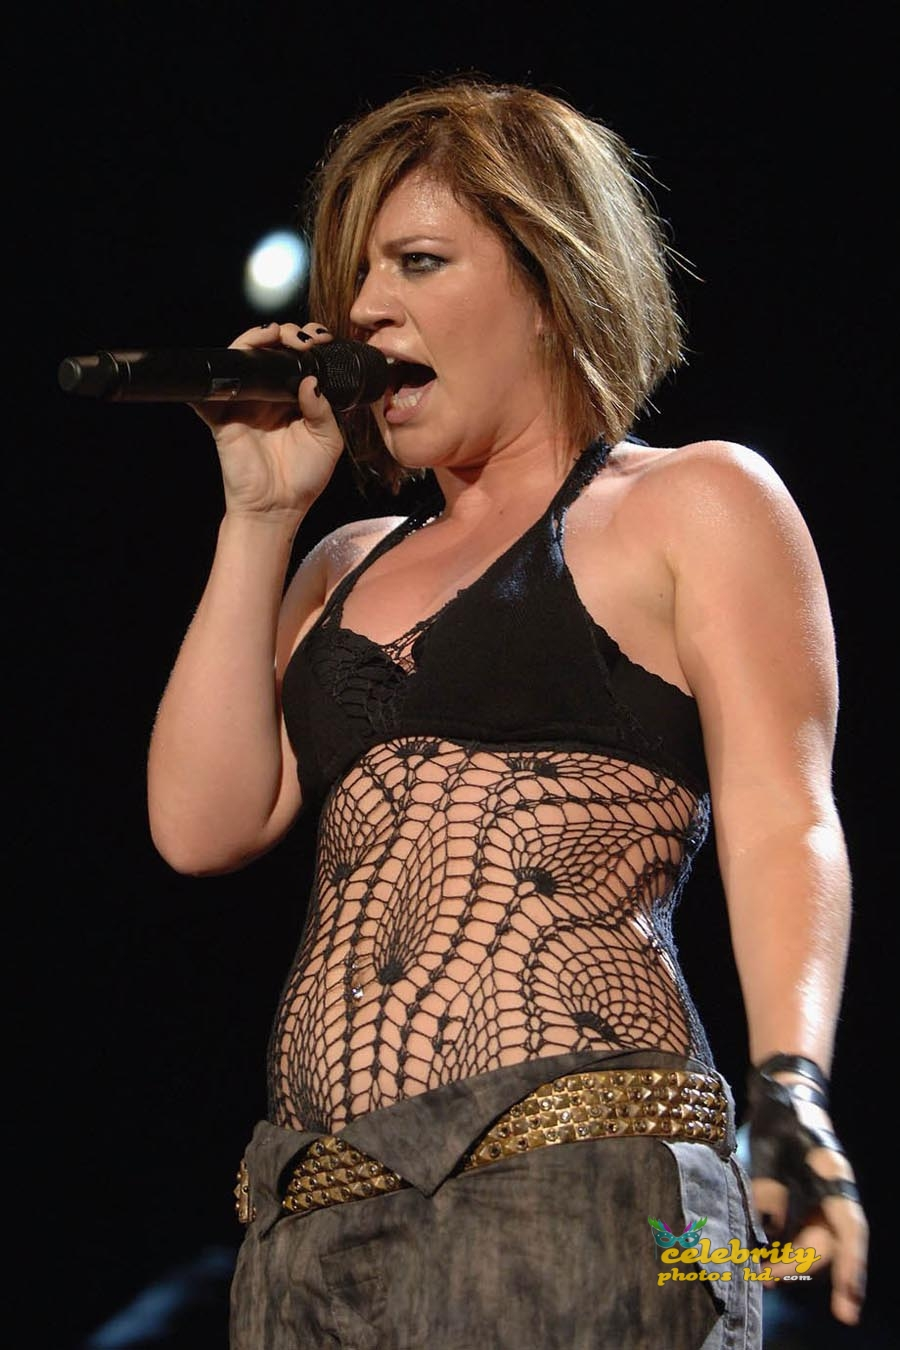 American Actress Kelly Clarkson Top Ten Sexy Photos